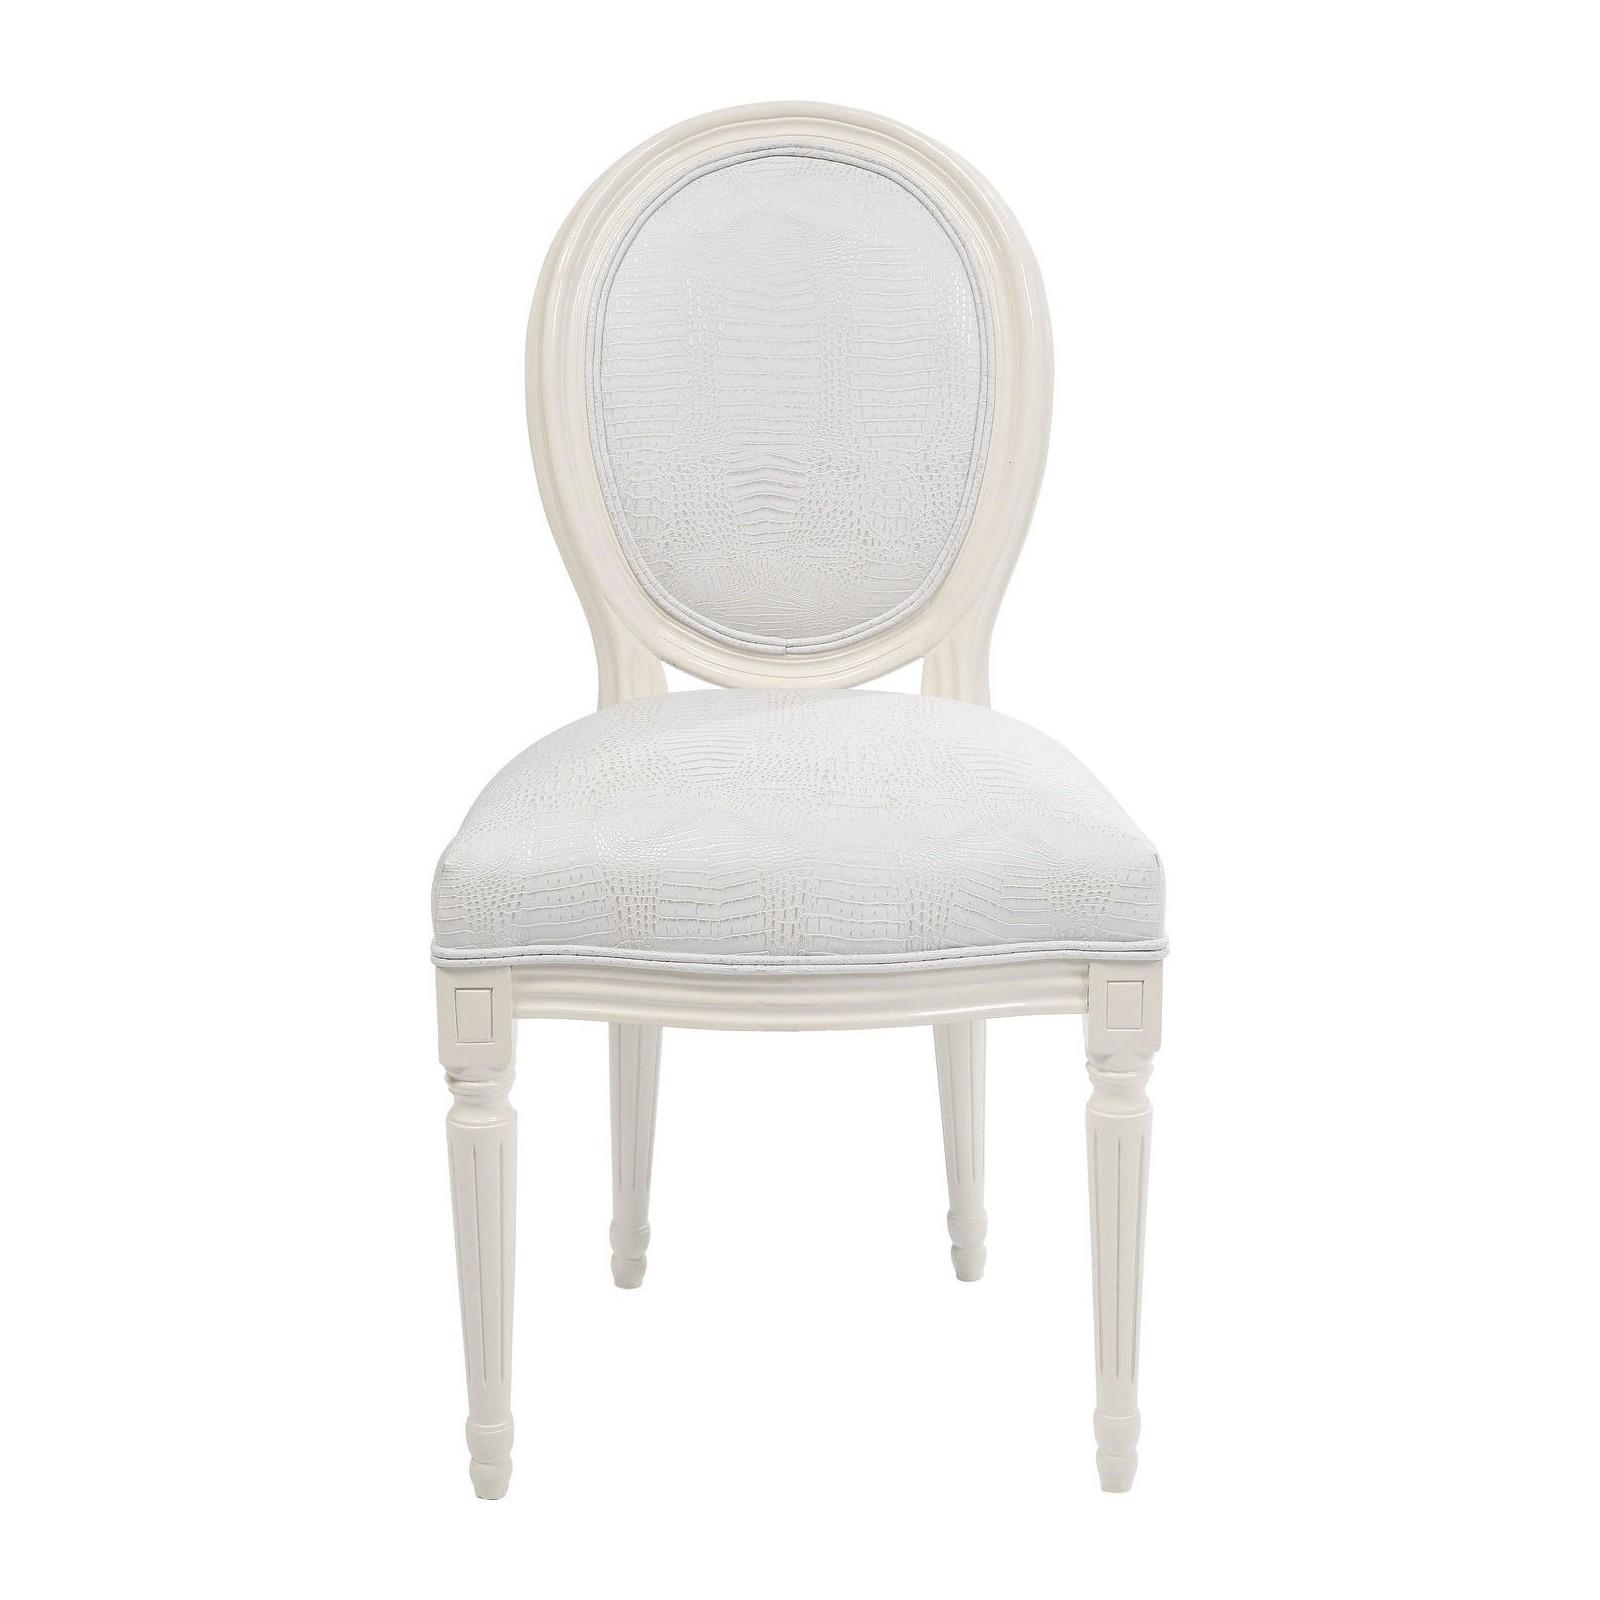 Chaise baroque blanche louis kare design for Chaise blanche